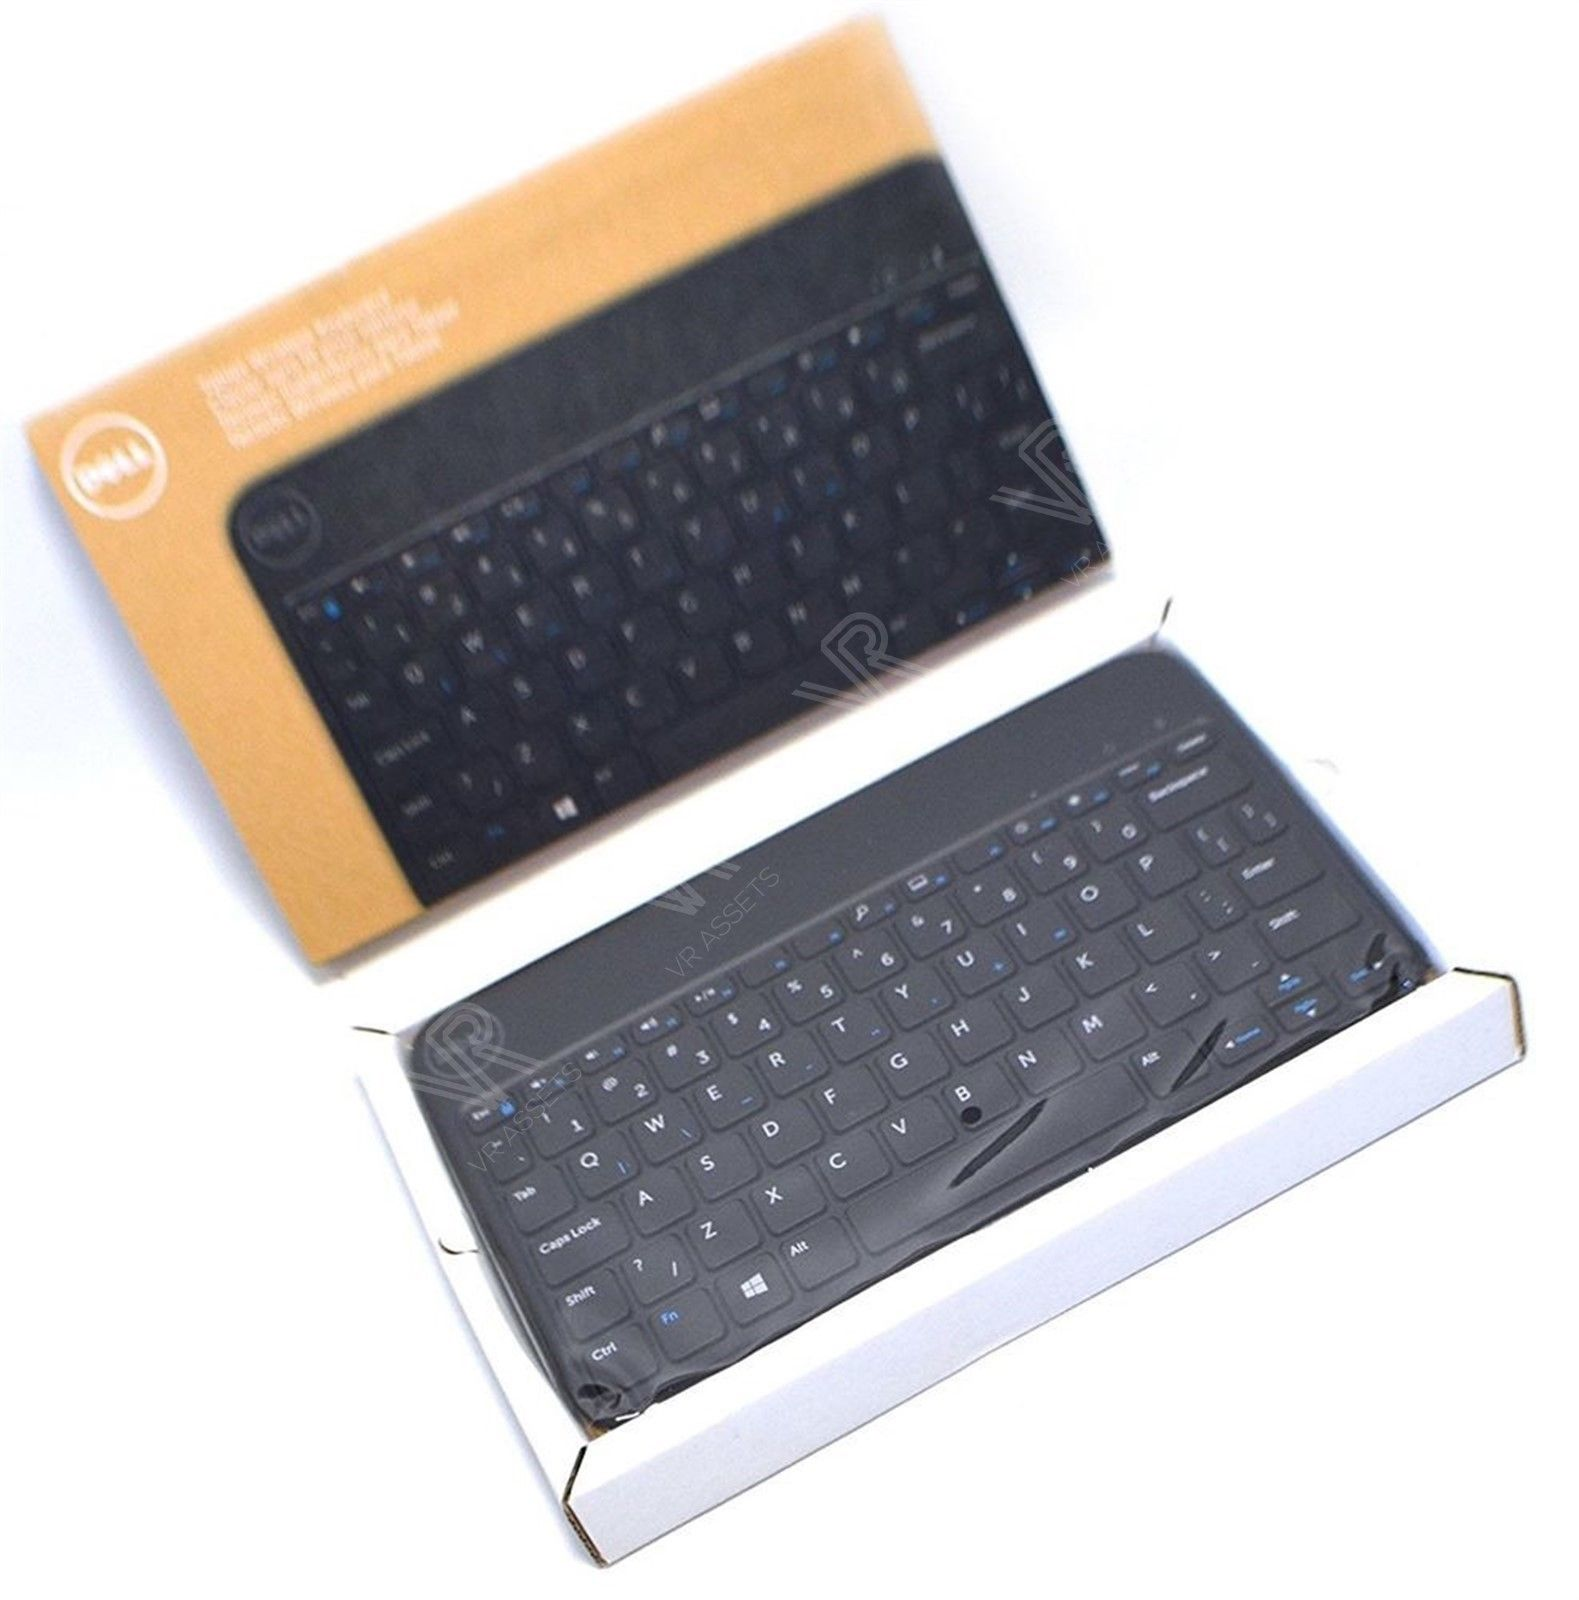 Dell Venue 8 Pro 5830 Tablet Wireless Bluetooth Keyboard w/ Case HP4GD 0HP4GD